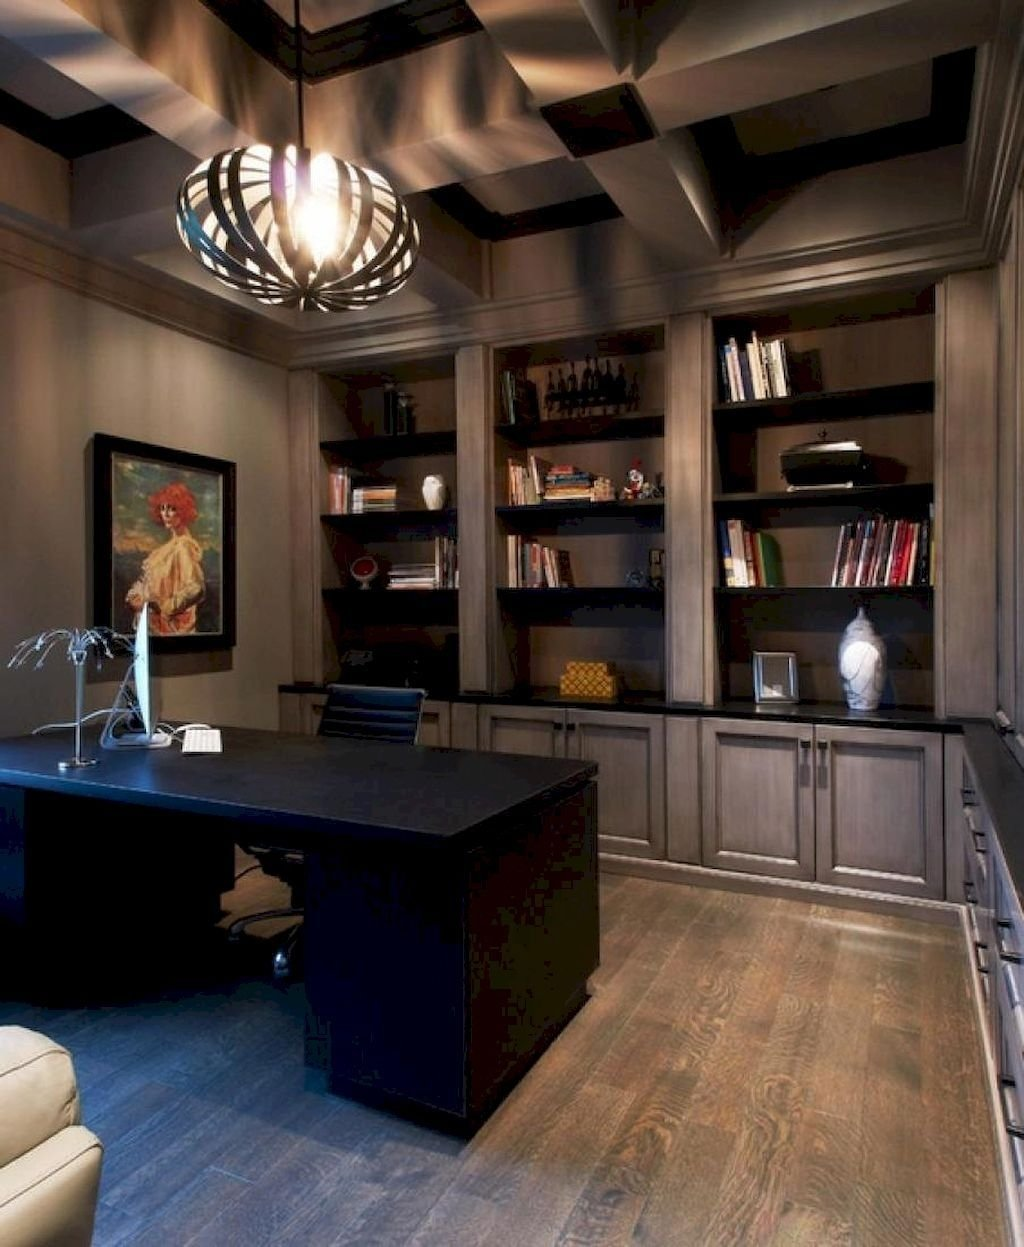 10 Stunning Home Office Ideas For Men 70 simple home office decor ideas for men idea man man caves and